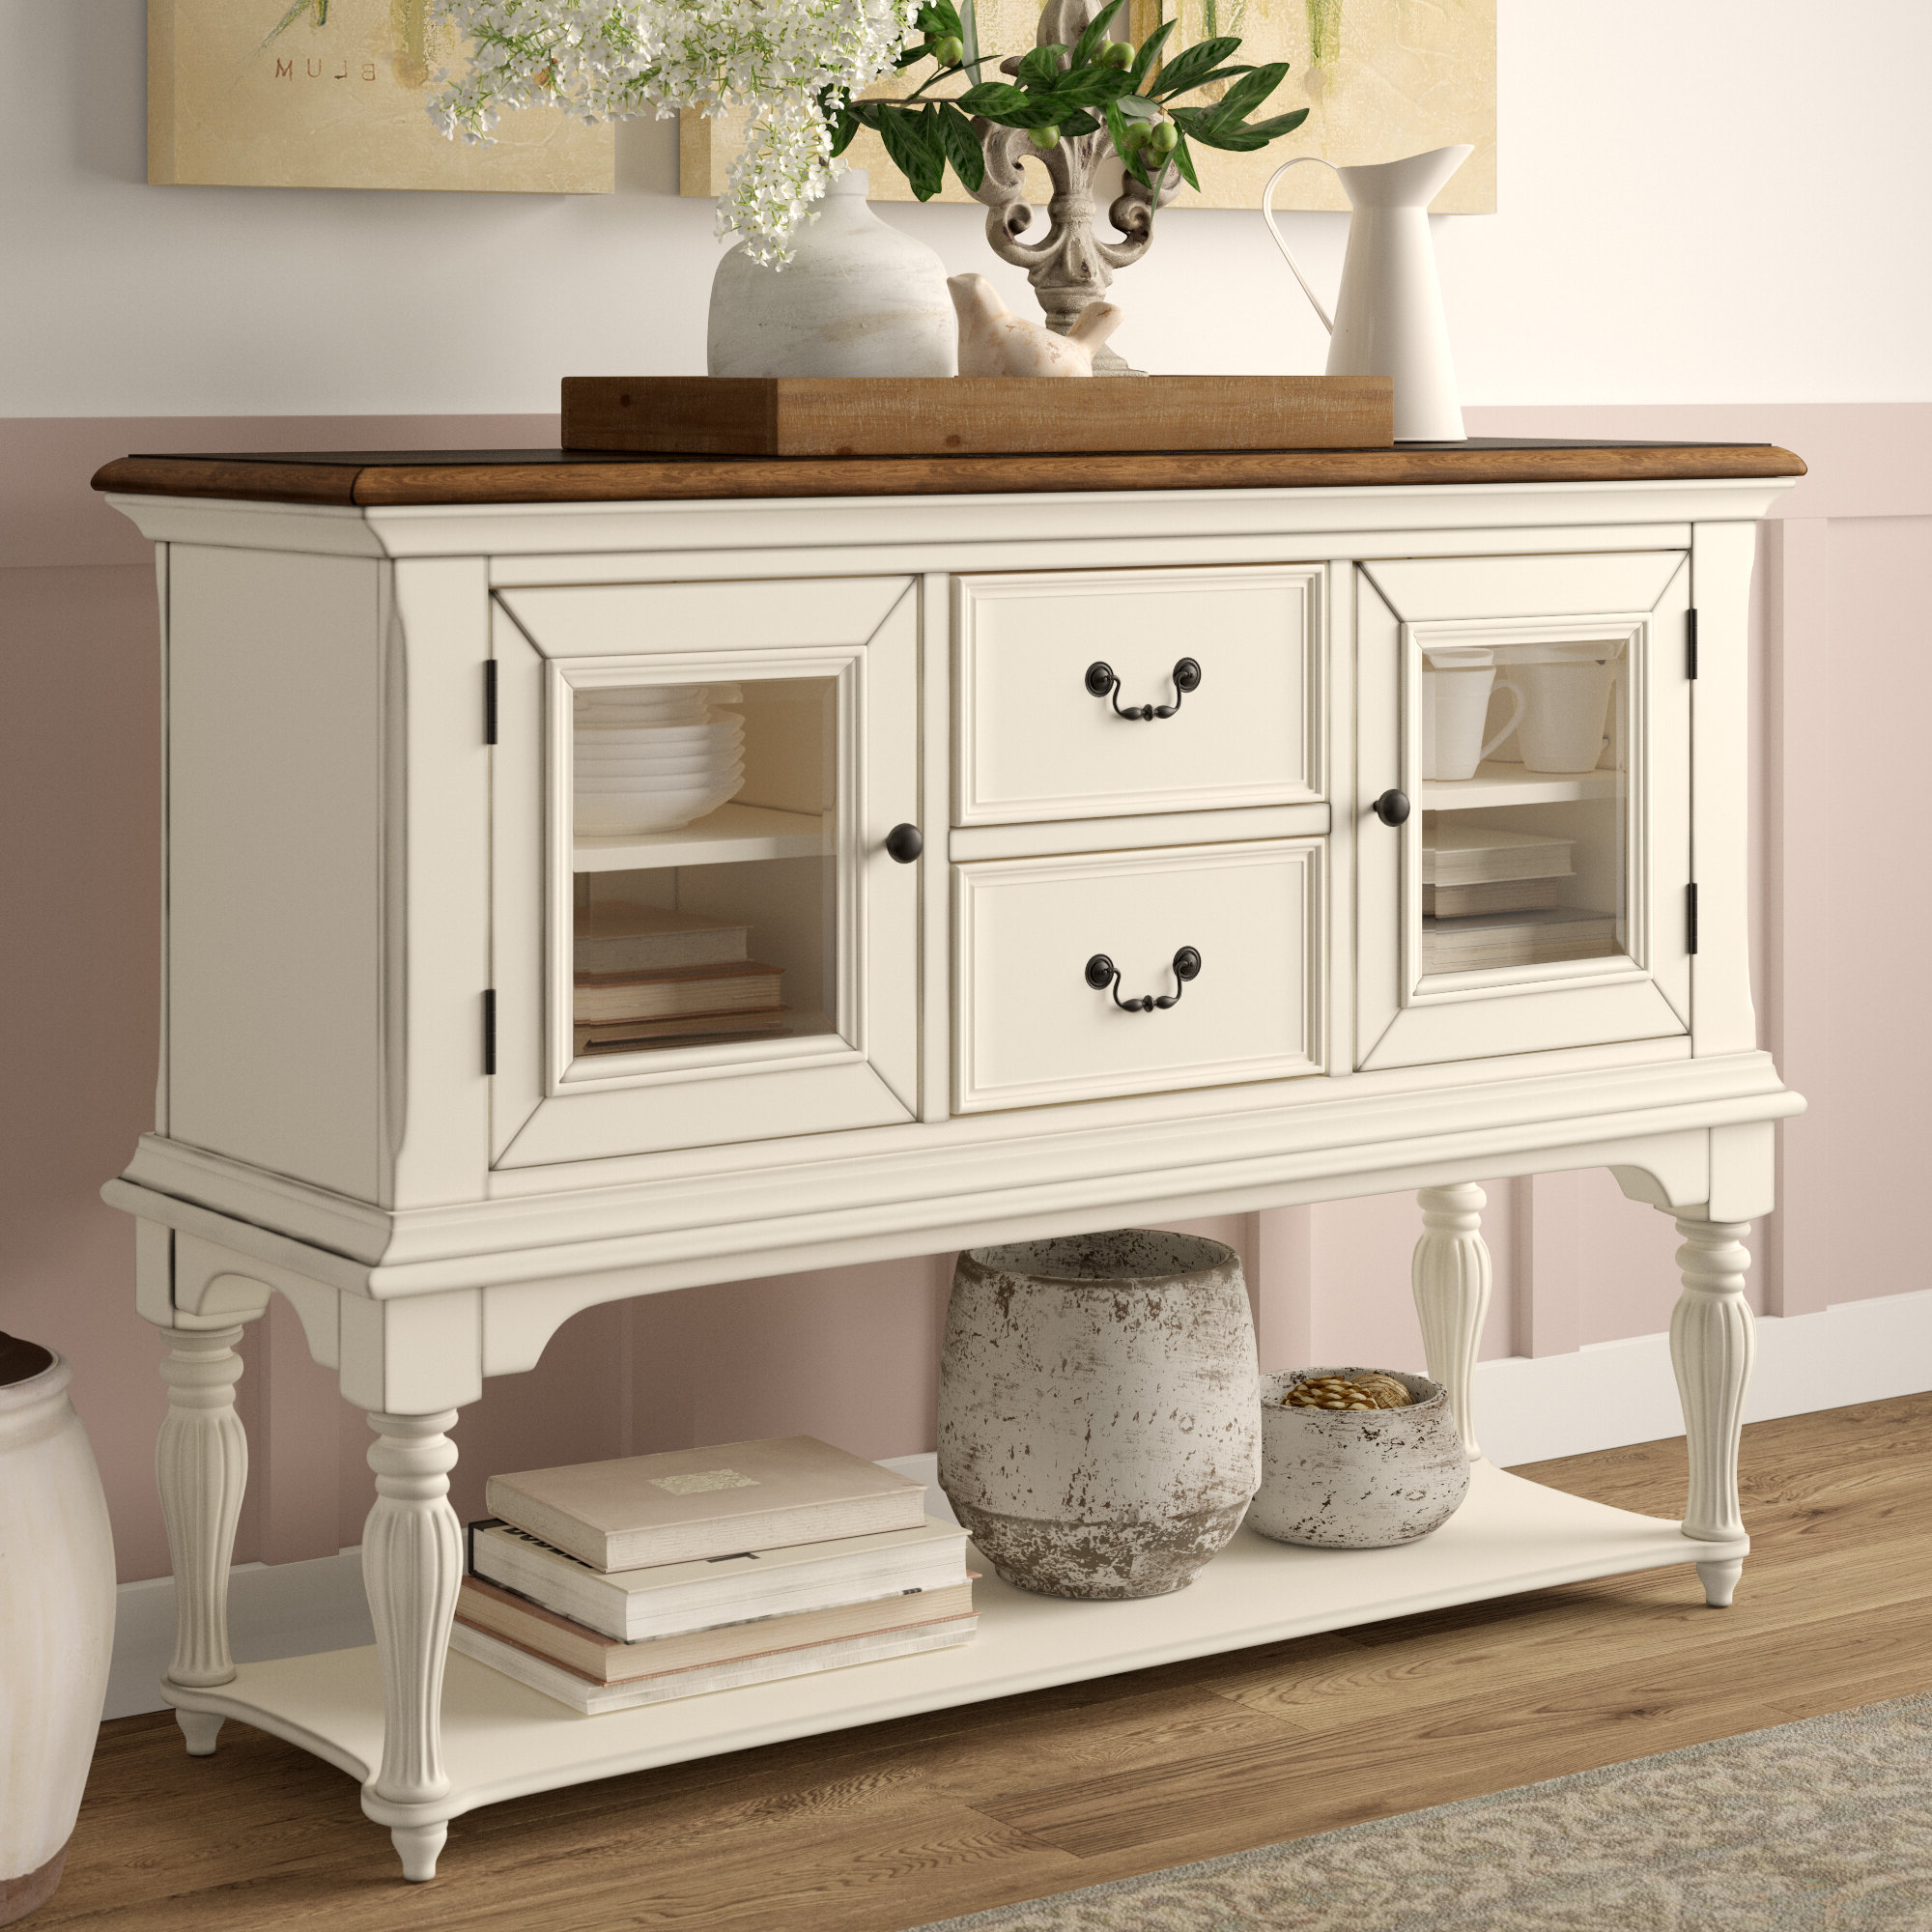 Sideboards & Buffet Tables You'll Love In 2019 | Wayfair Regarding Velazco Sideboards (View 10 of 20)